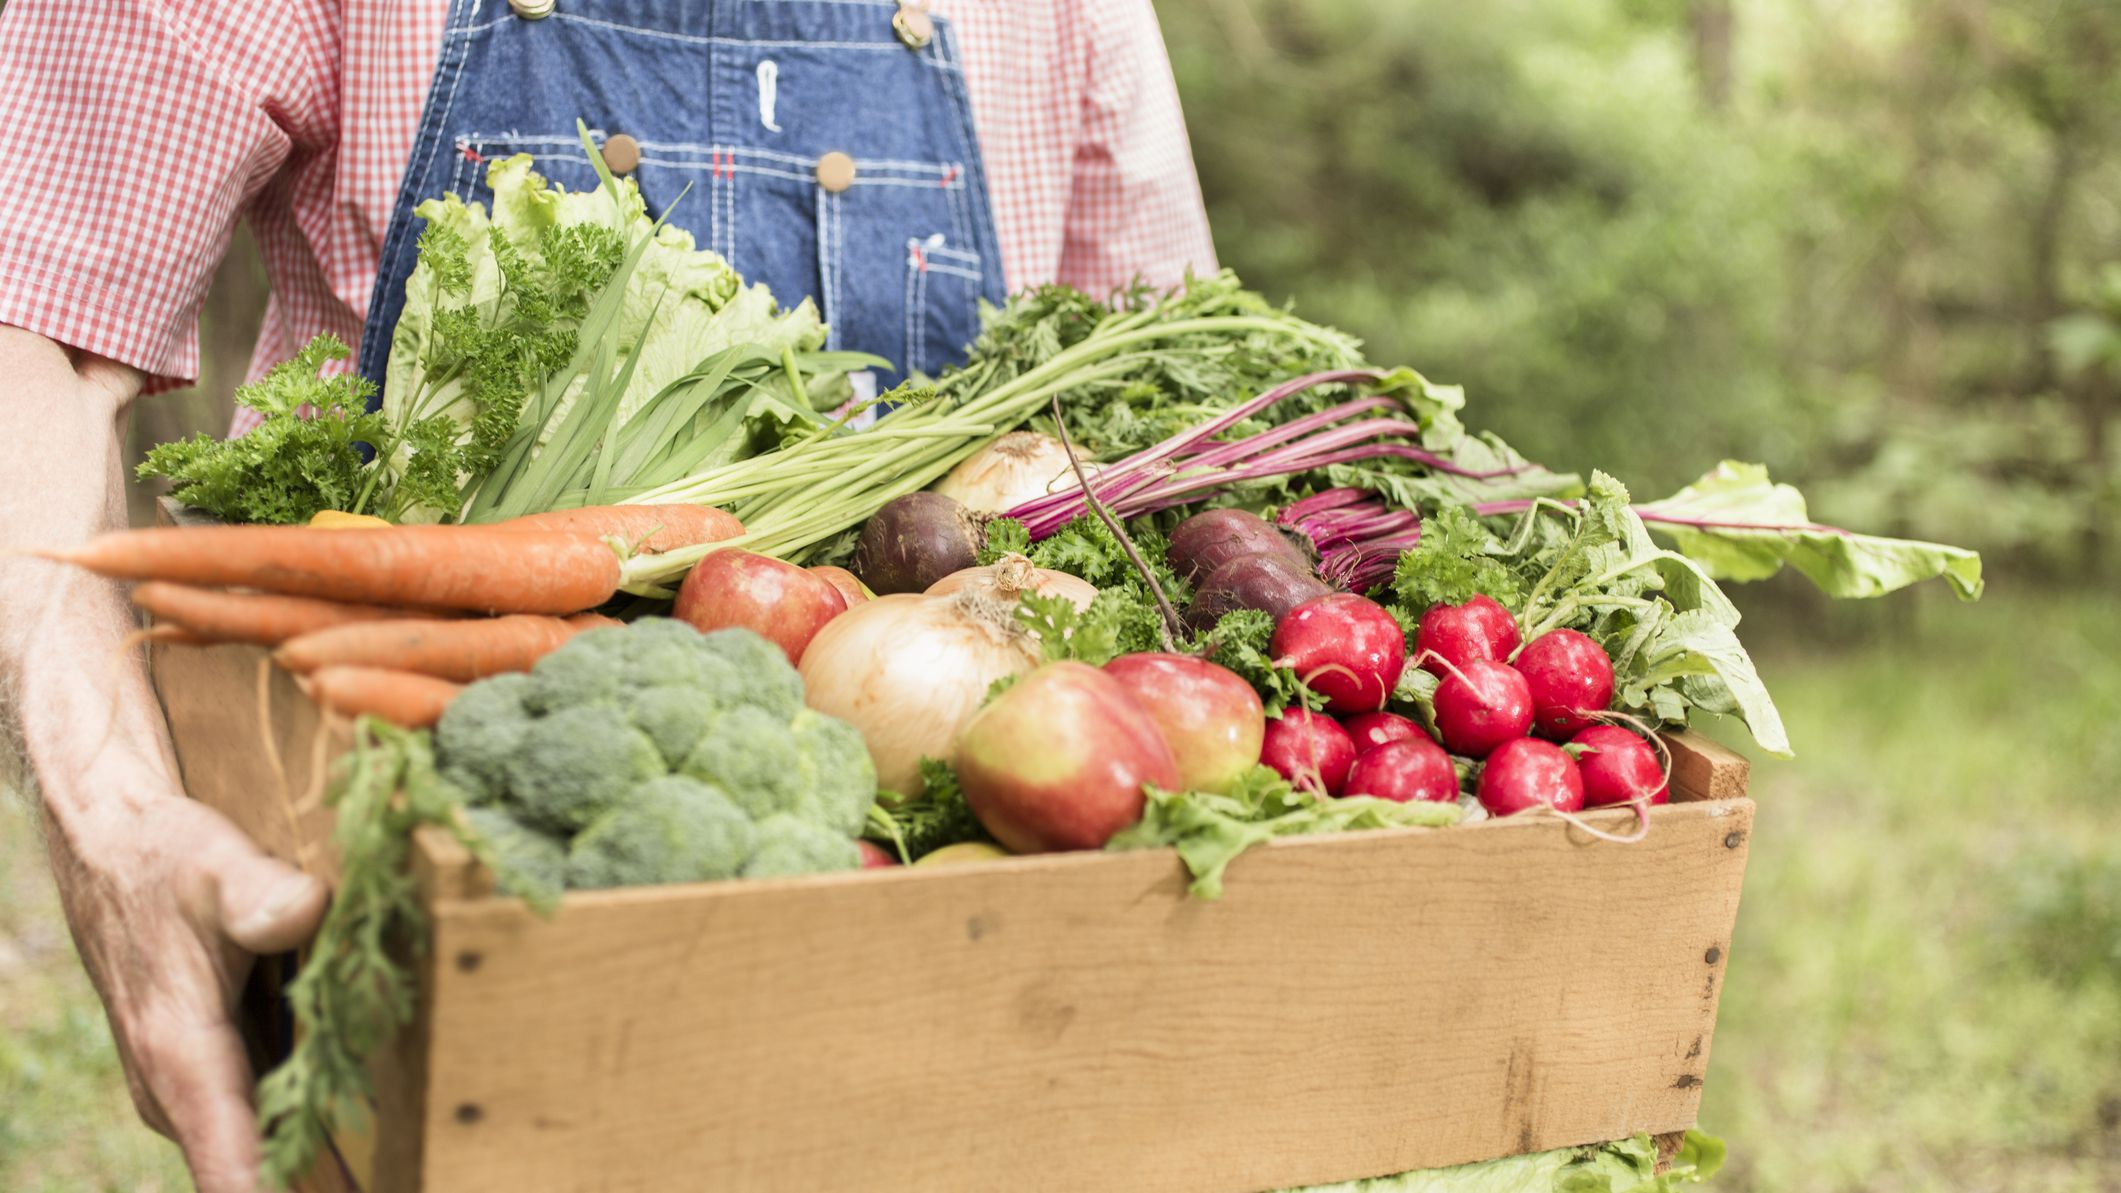 How Organic Farming Benefits the Environment